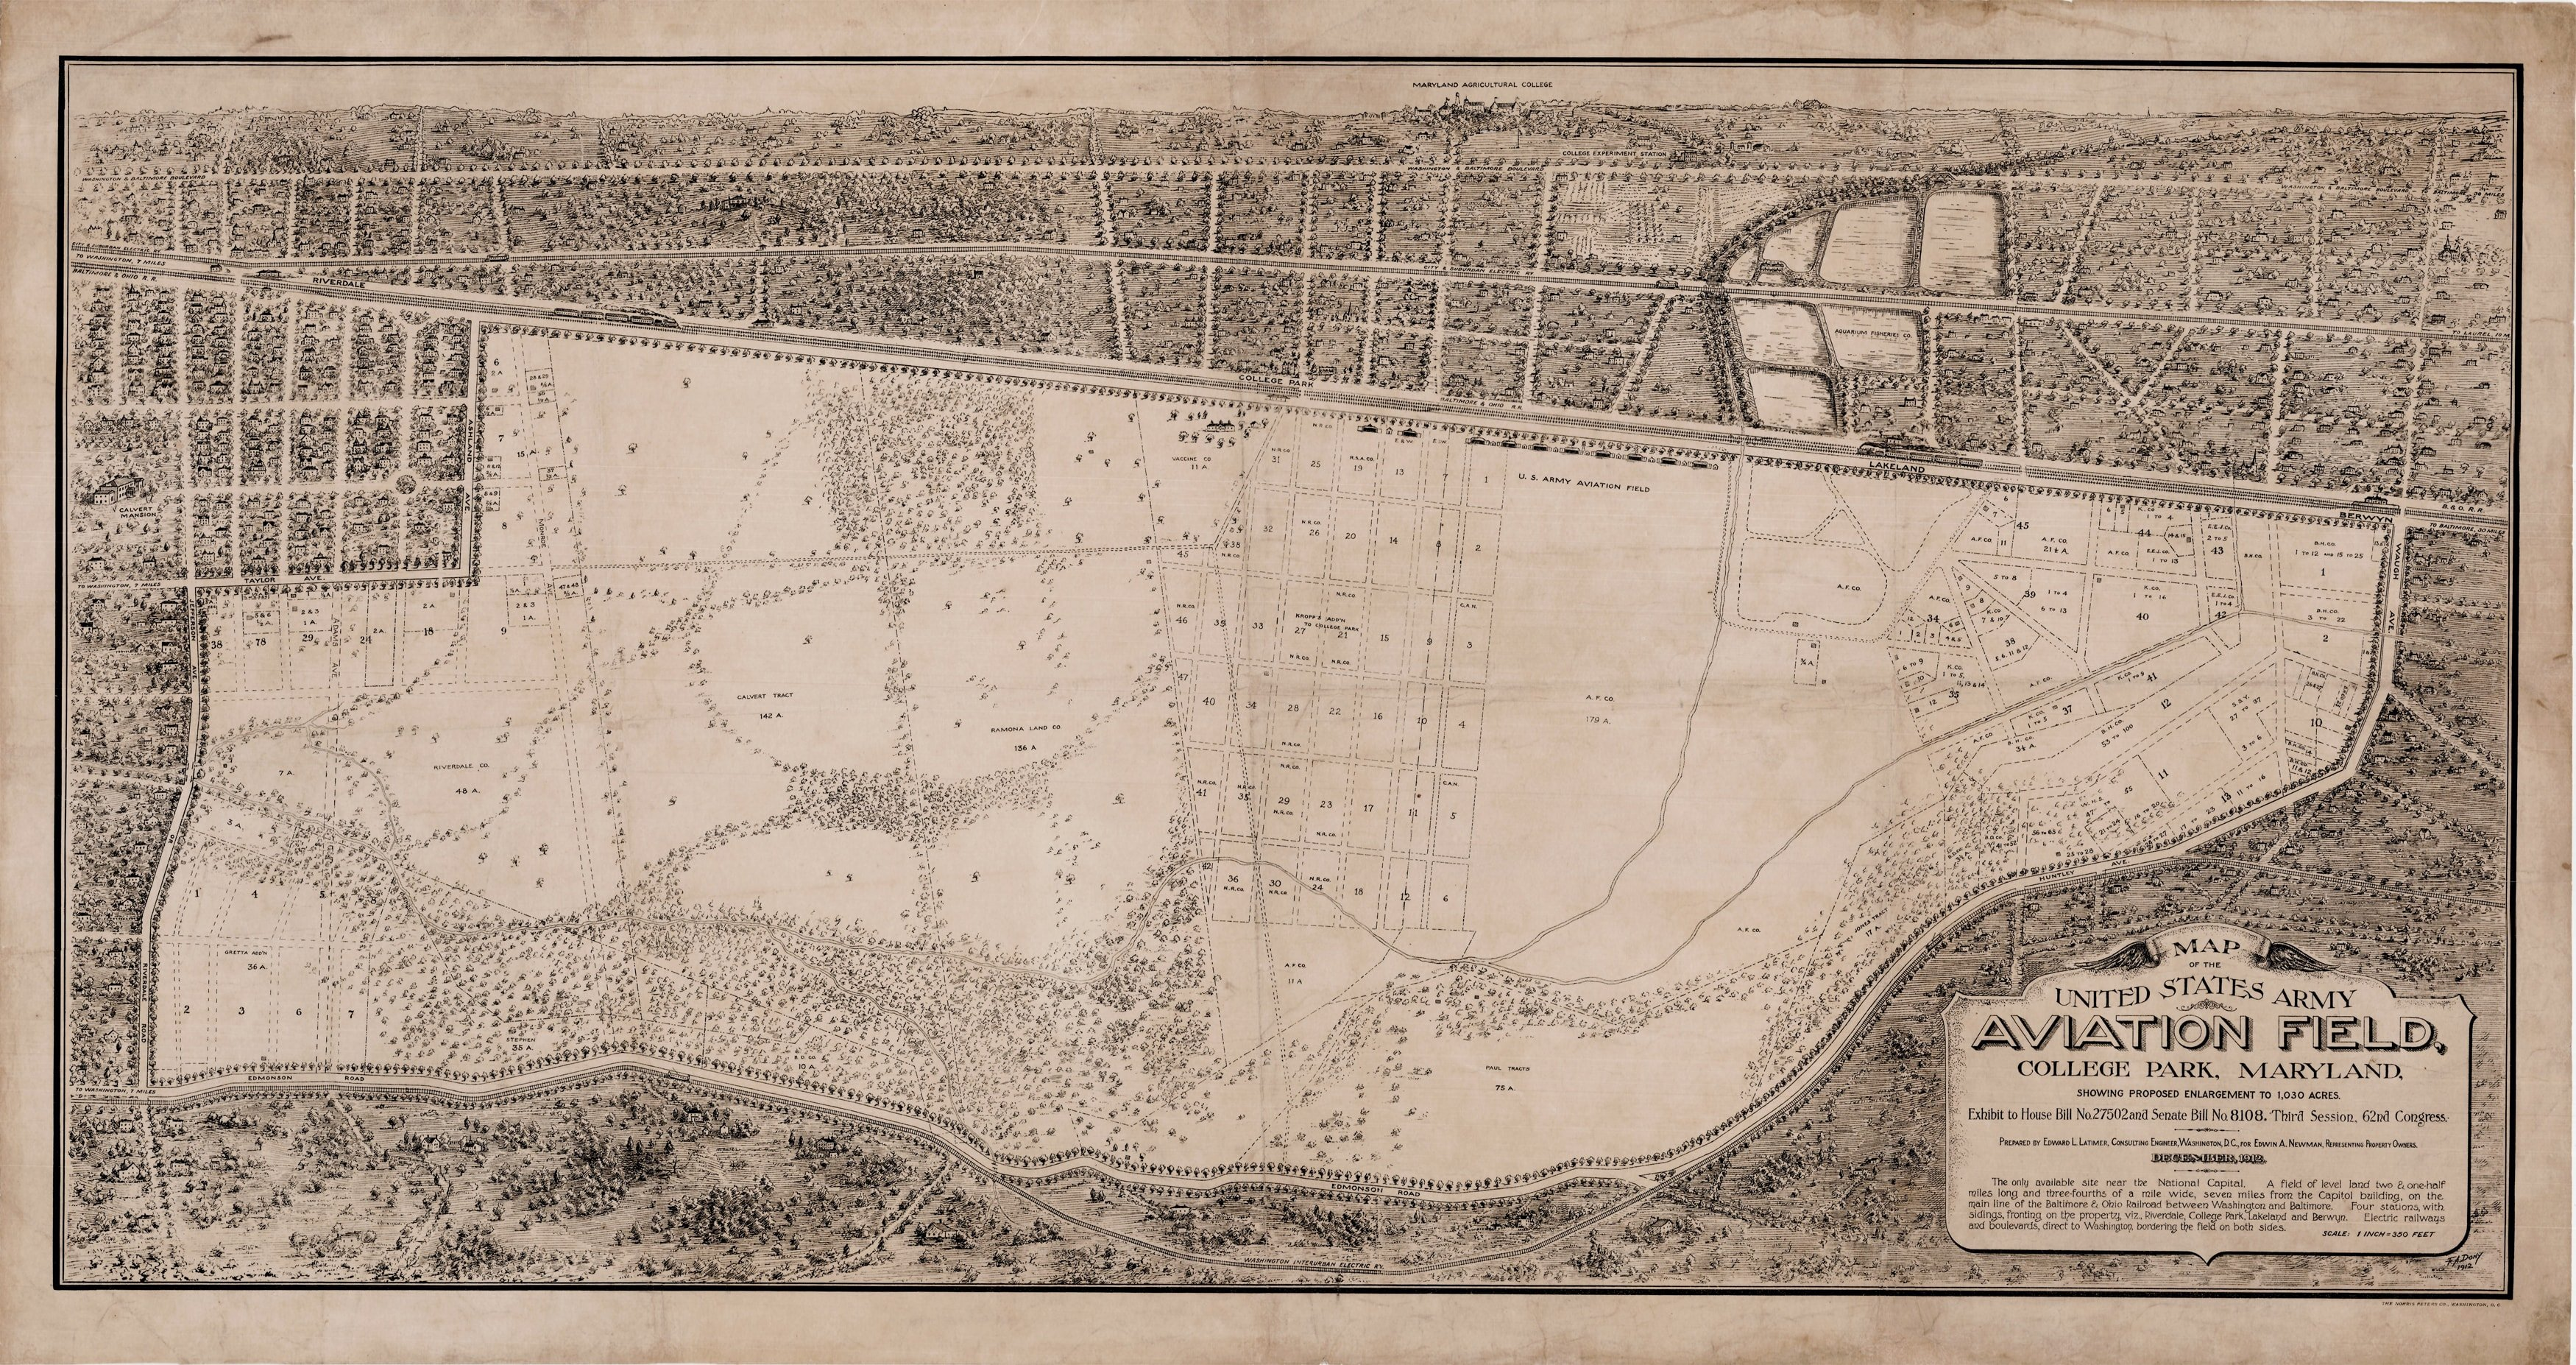 1912 Map Of The Army Airfield At College Park